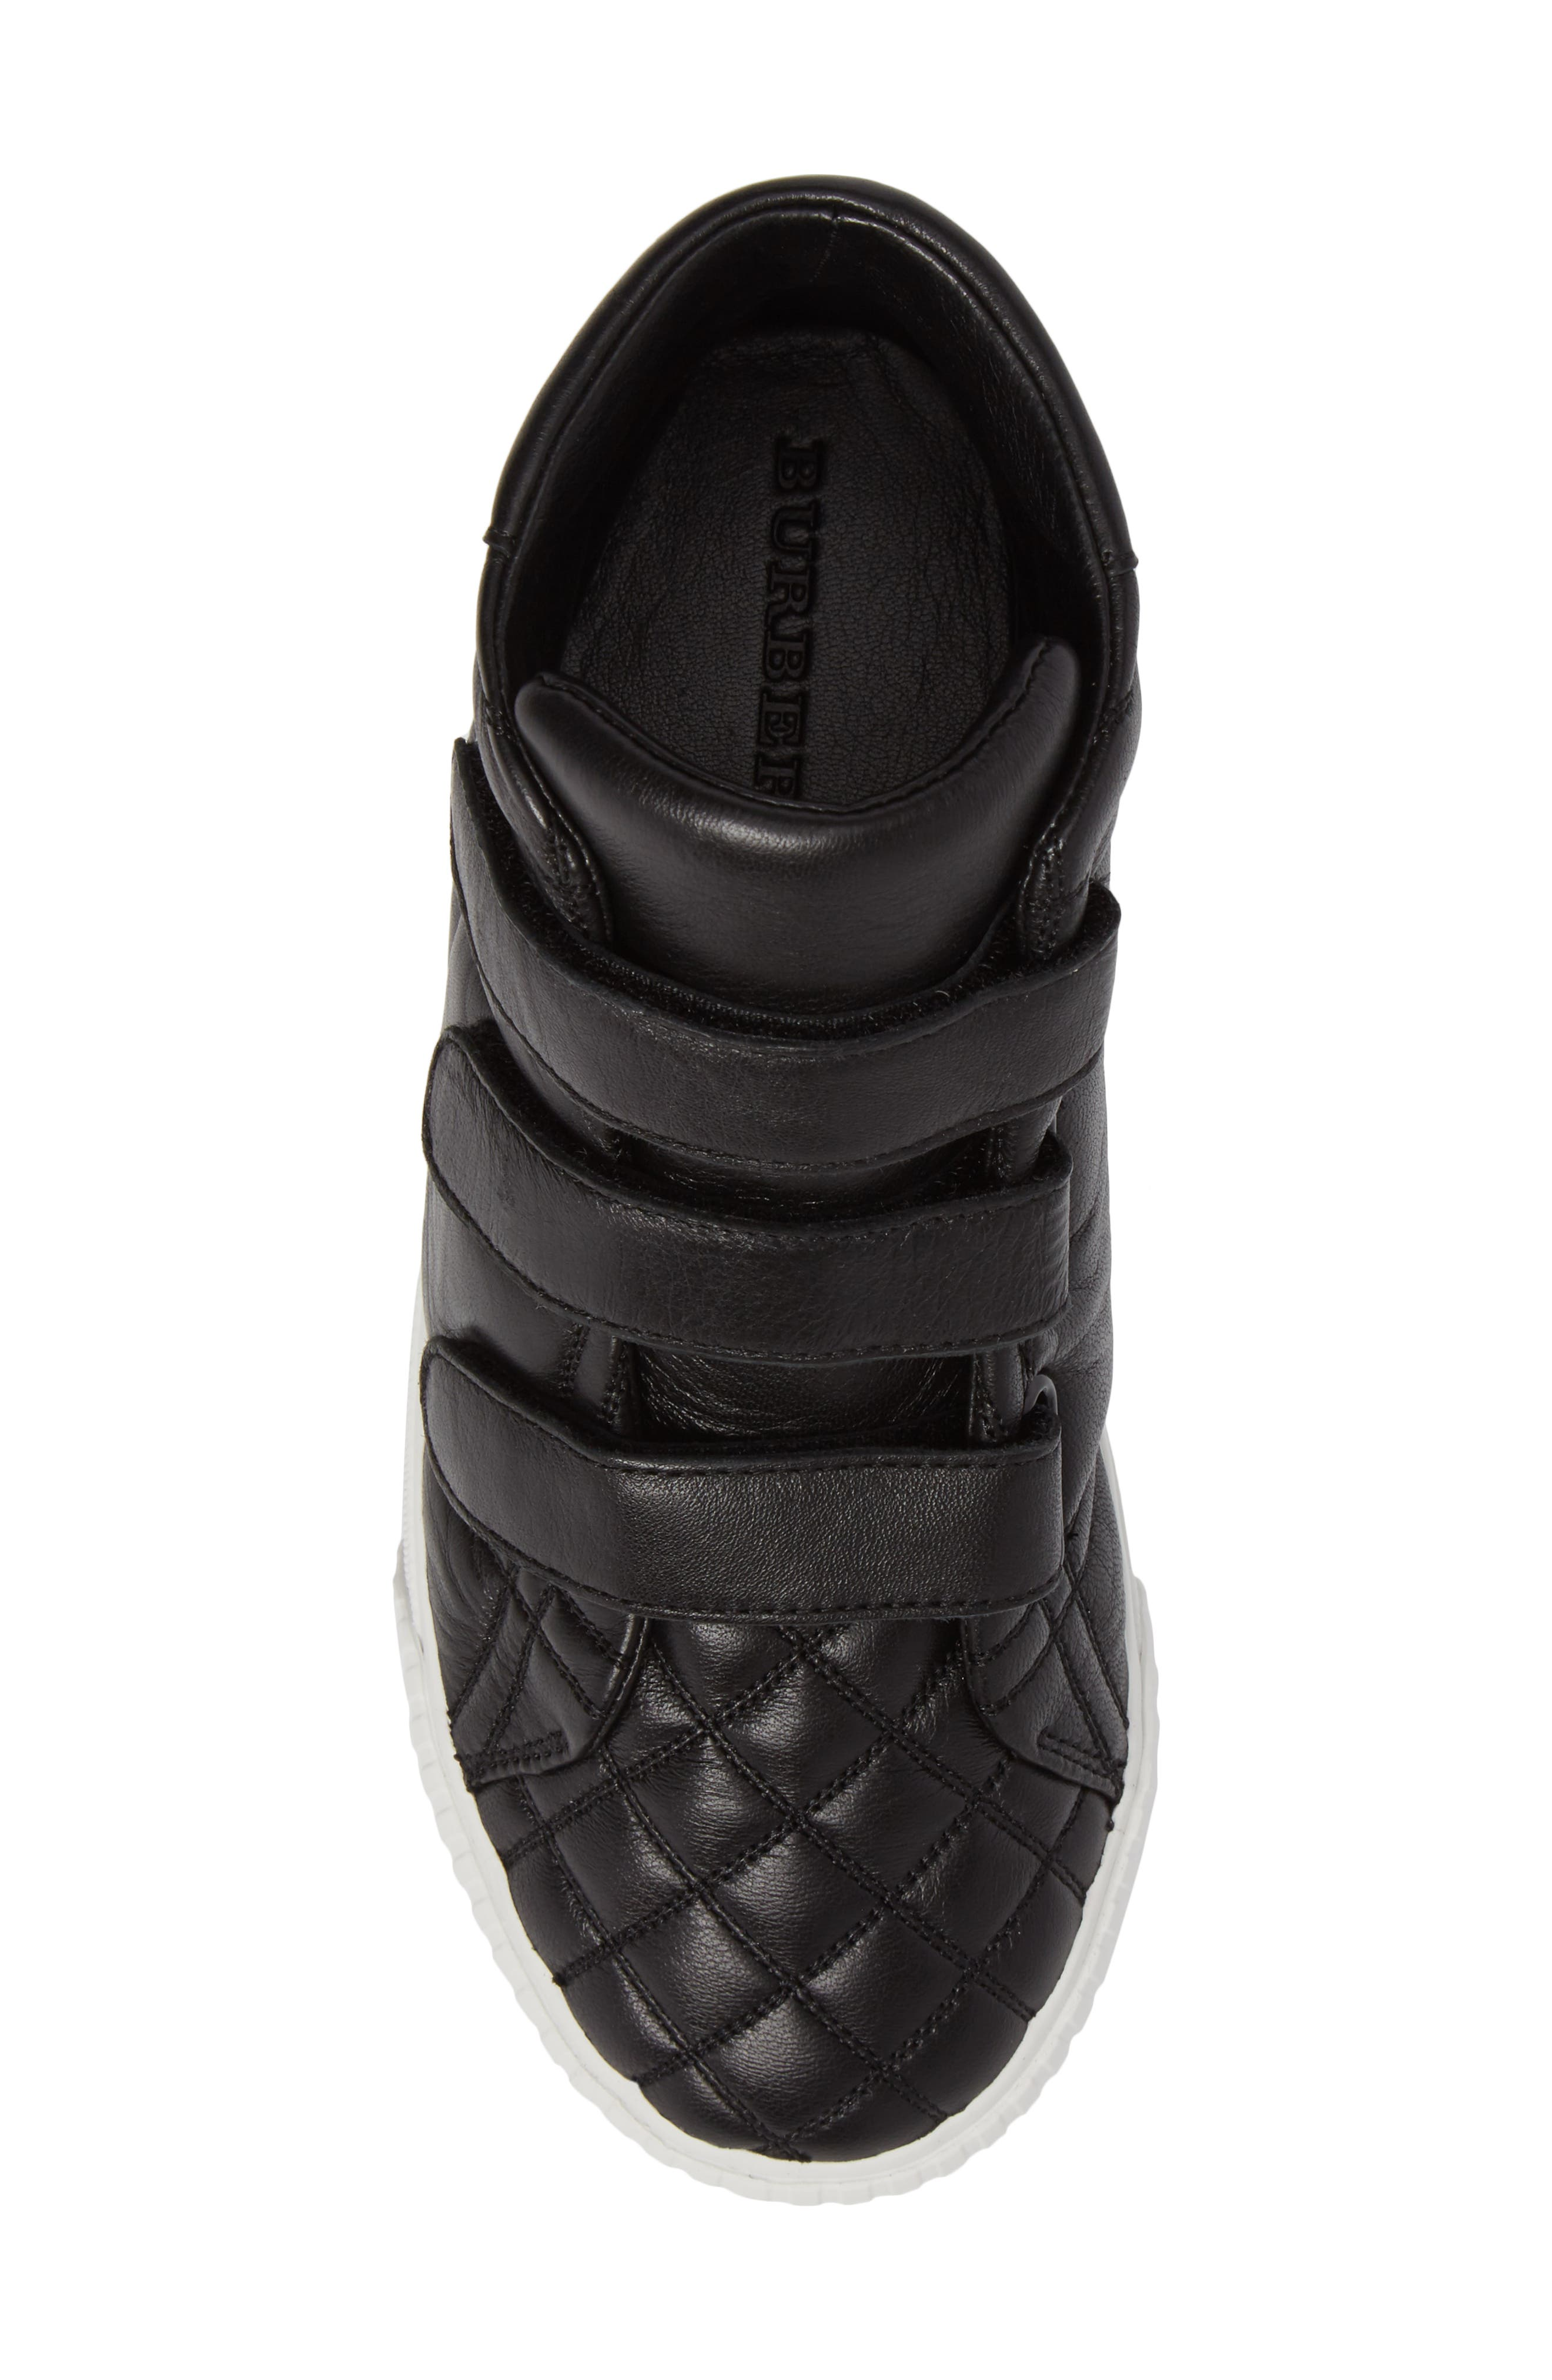 Sturrock Quilted High Top Sneaker,                             Alternate thumbnail 9, color,